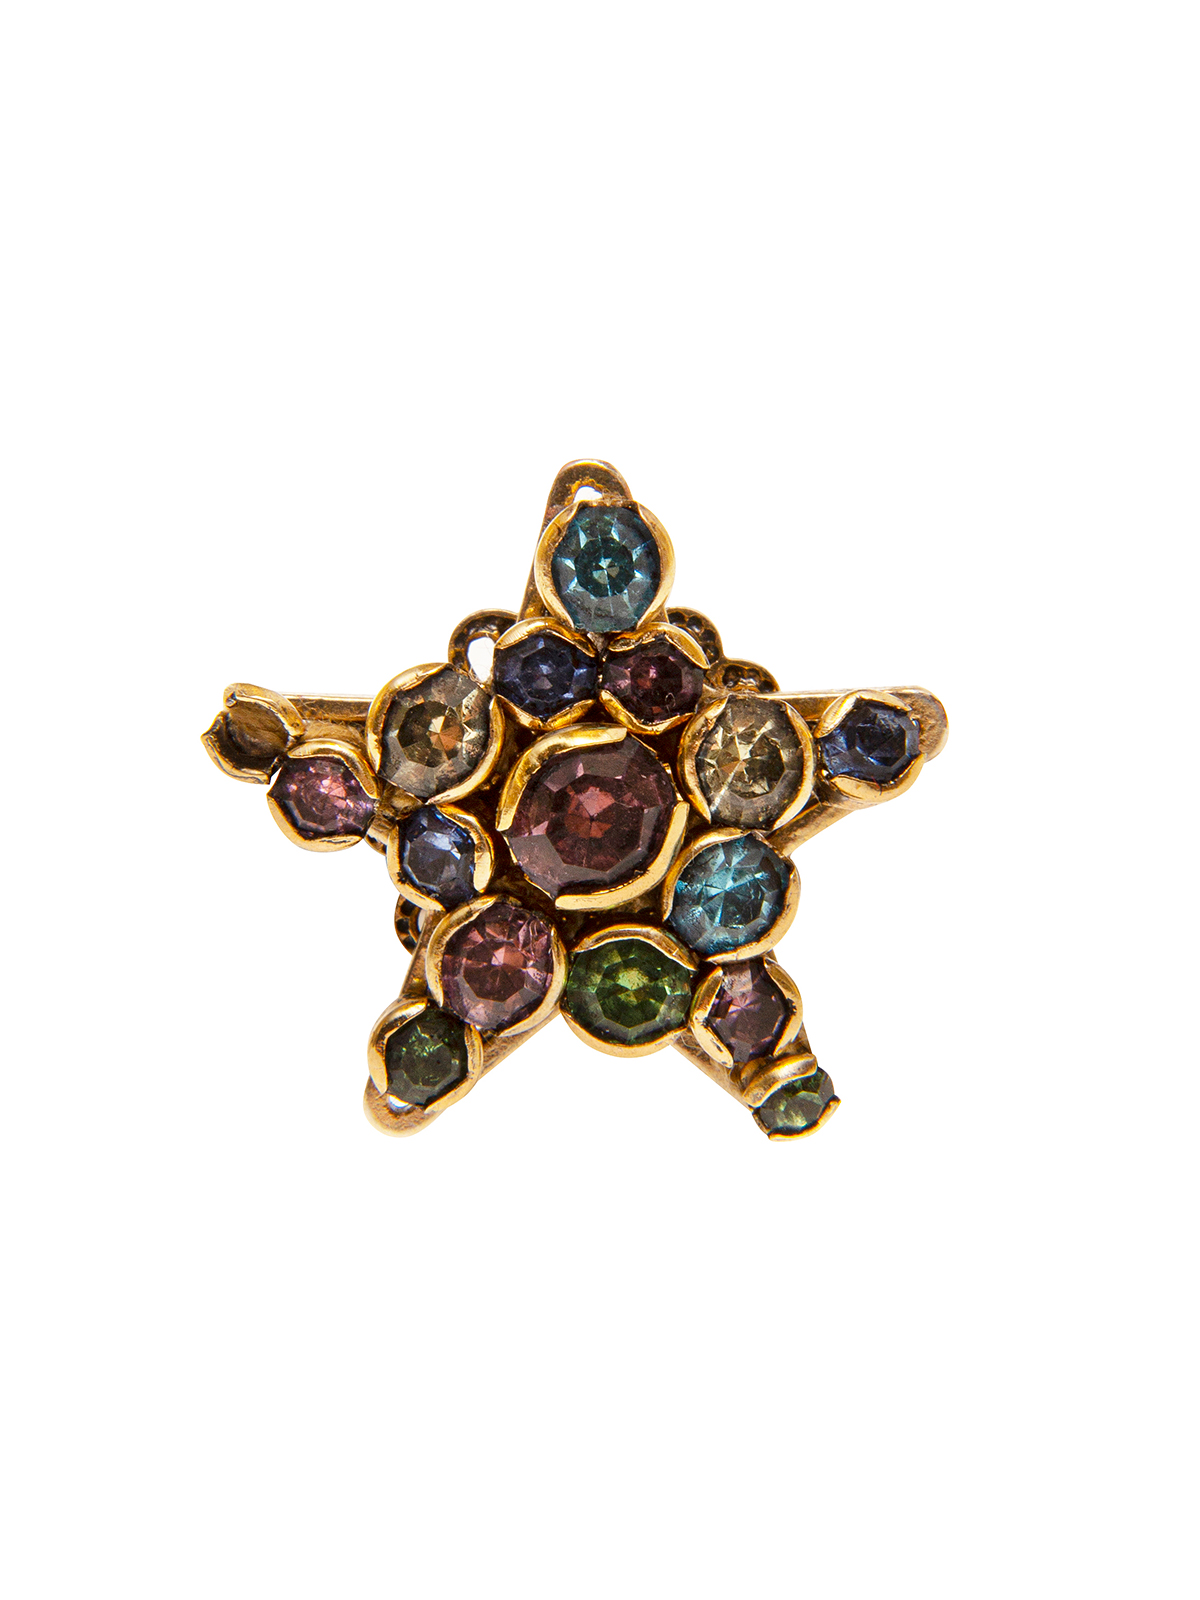 Star ring embellished with multicolor stones